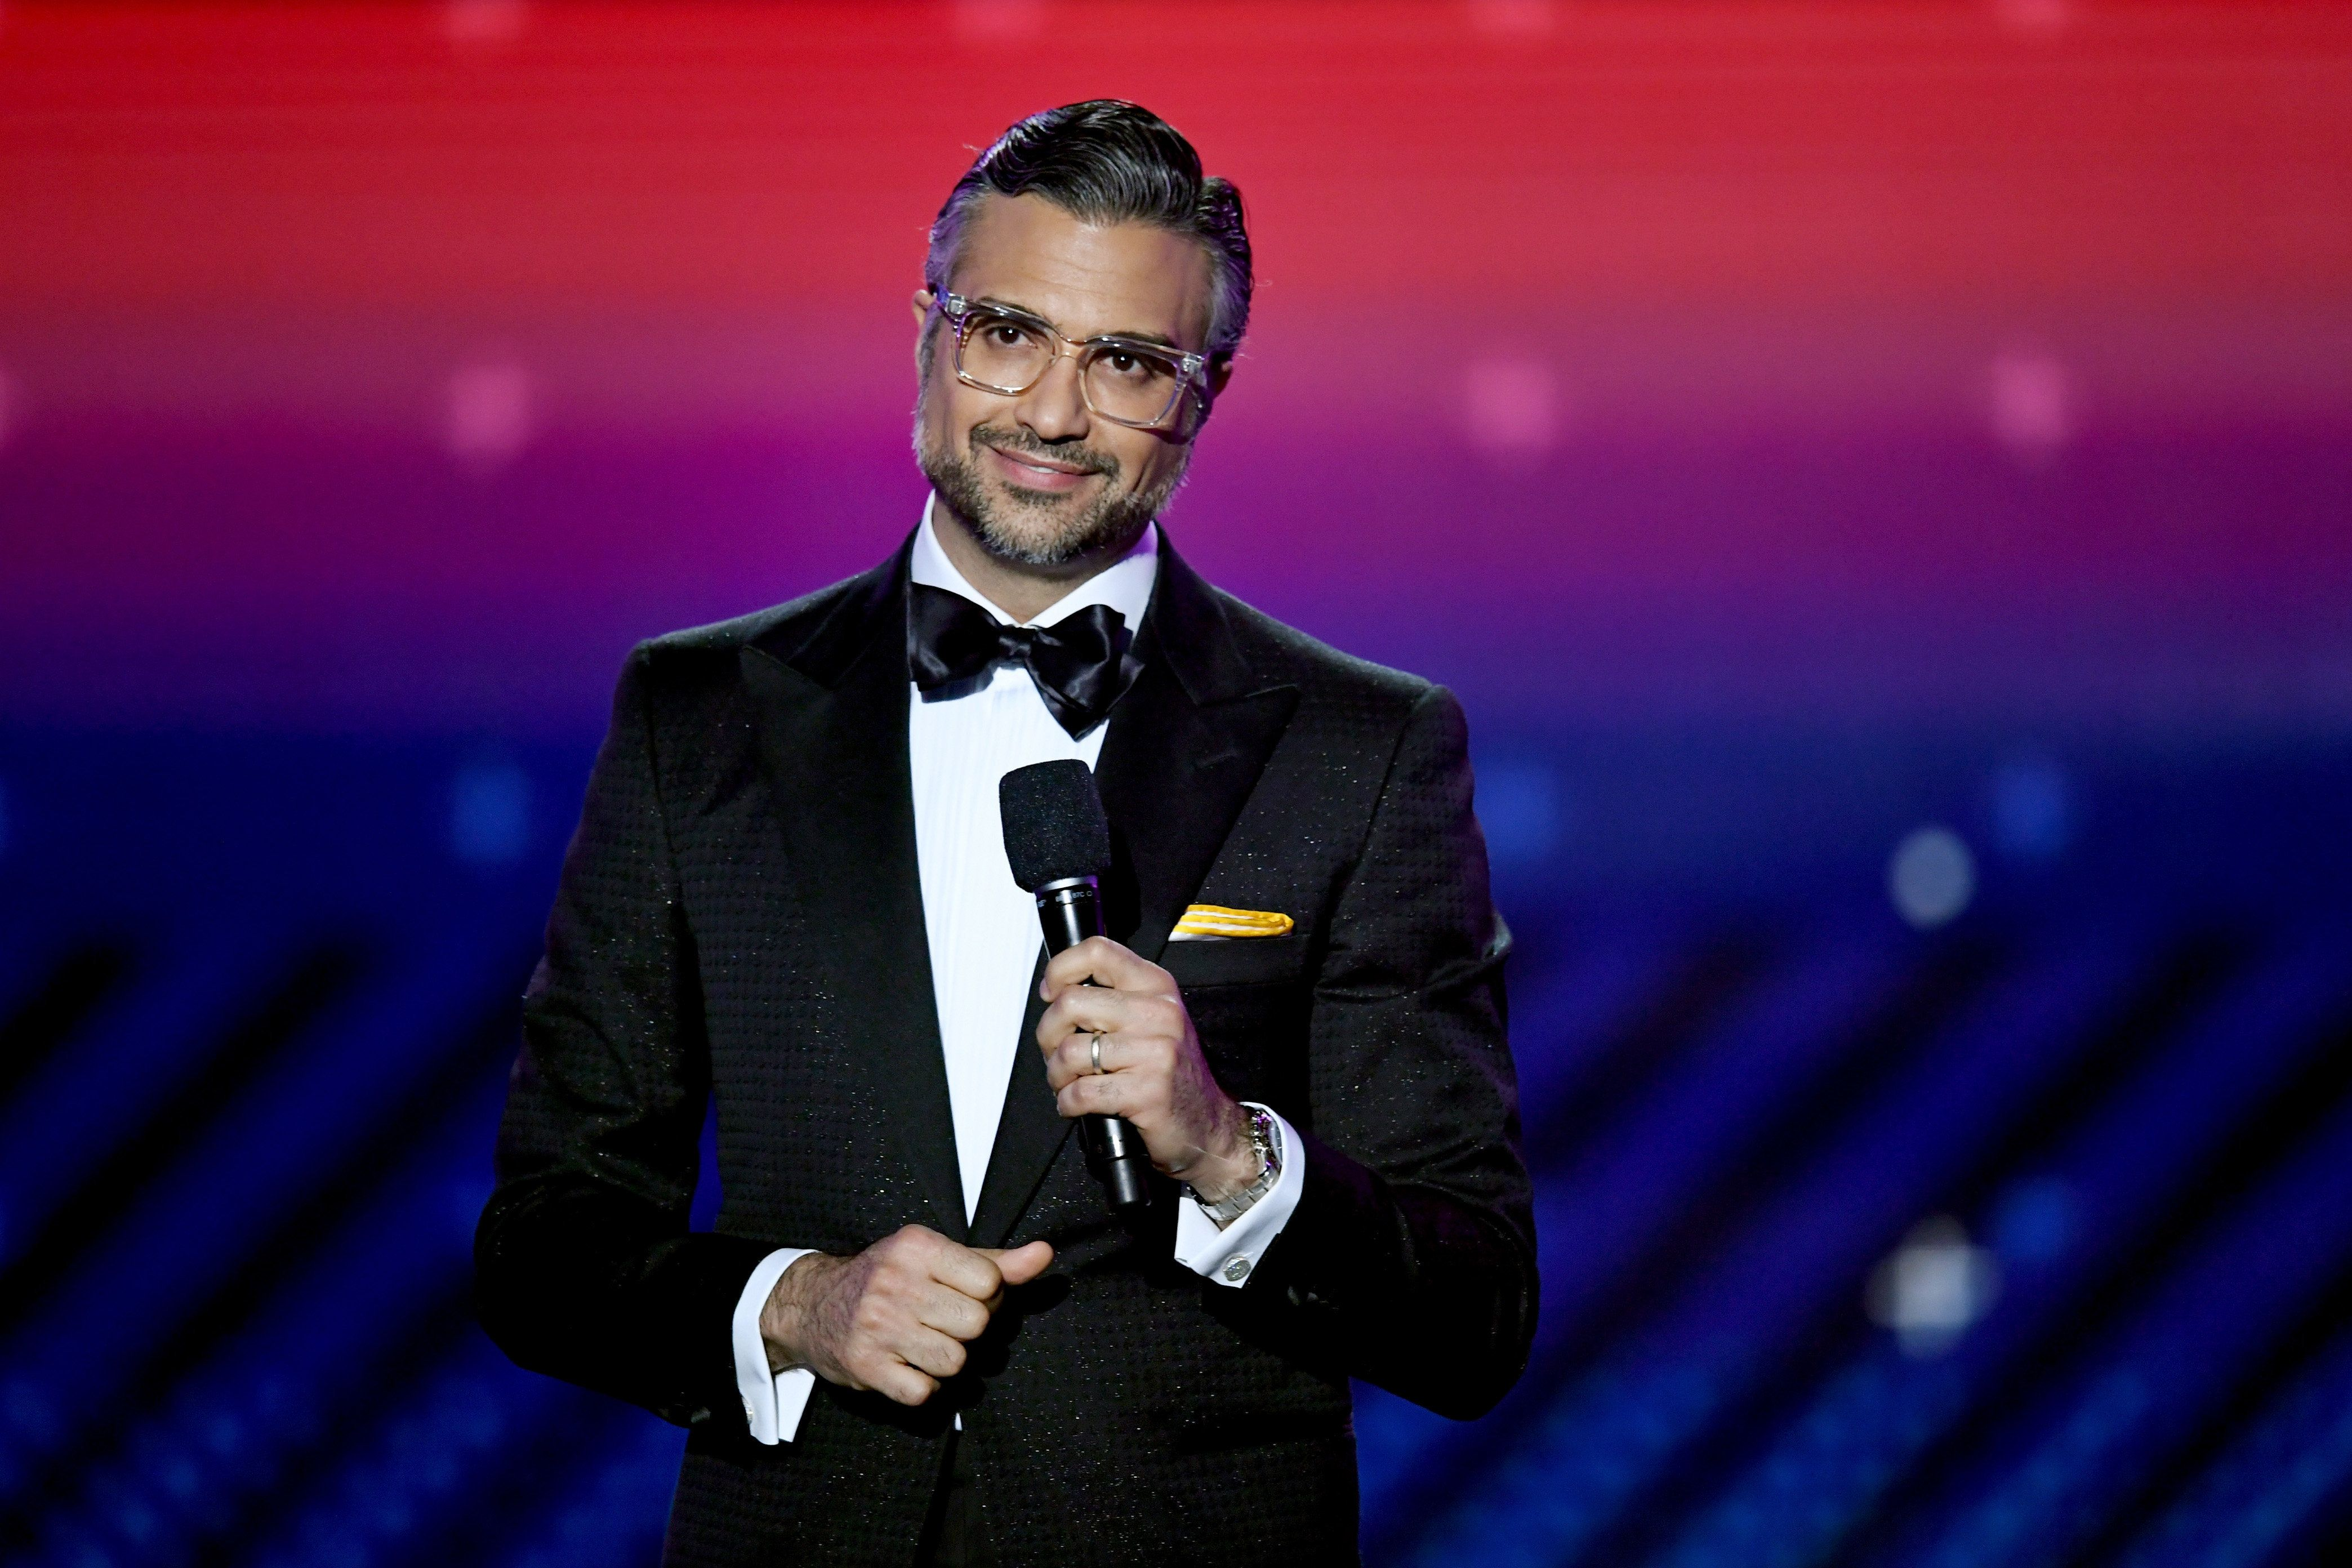 LAS VEGAS, NV - NOVEMBER 16:  Host Jaime Camil speaks onstage at the 18th Annual Latin Grammy Awards at MGM Grand Garden Arena on November 16, 2017 in Las Vegas, Nevada.  (Photo by Kevin Winter/Getty Images)